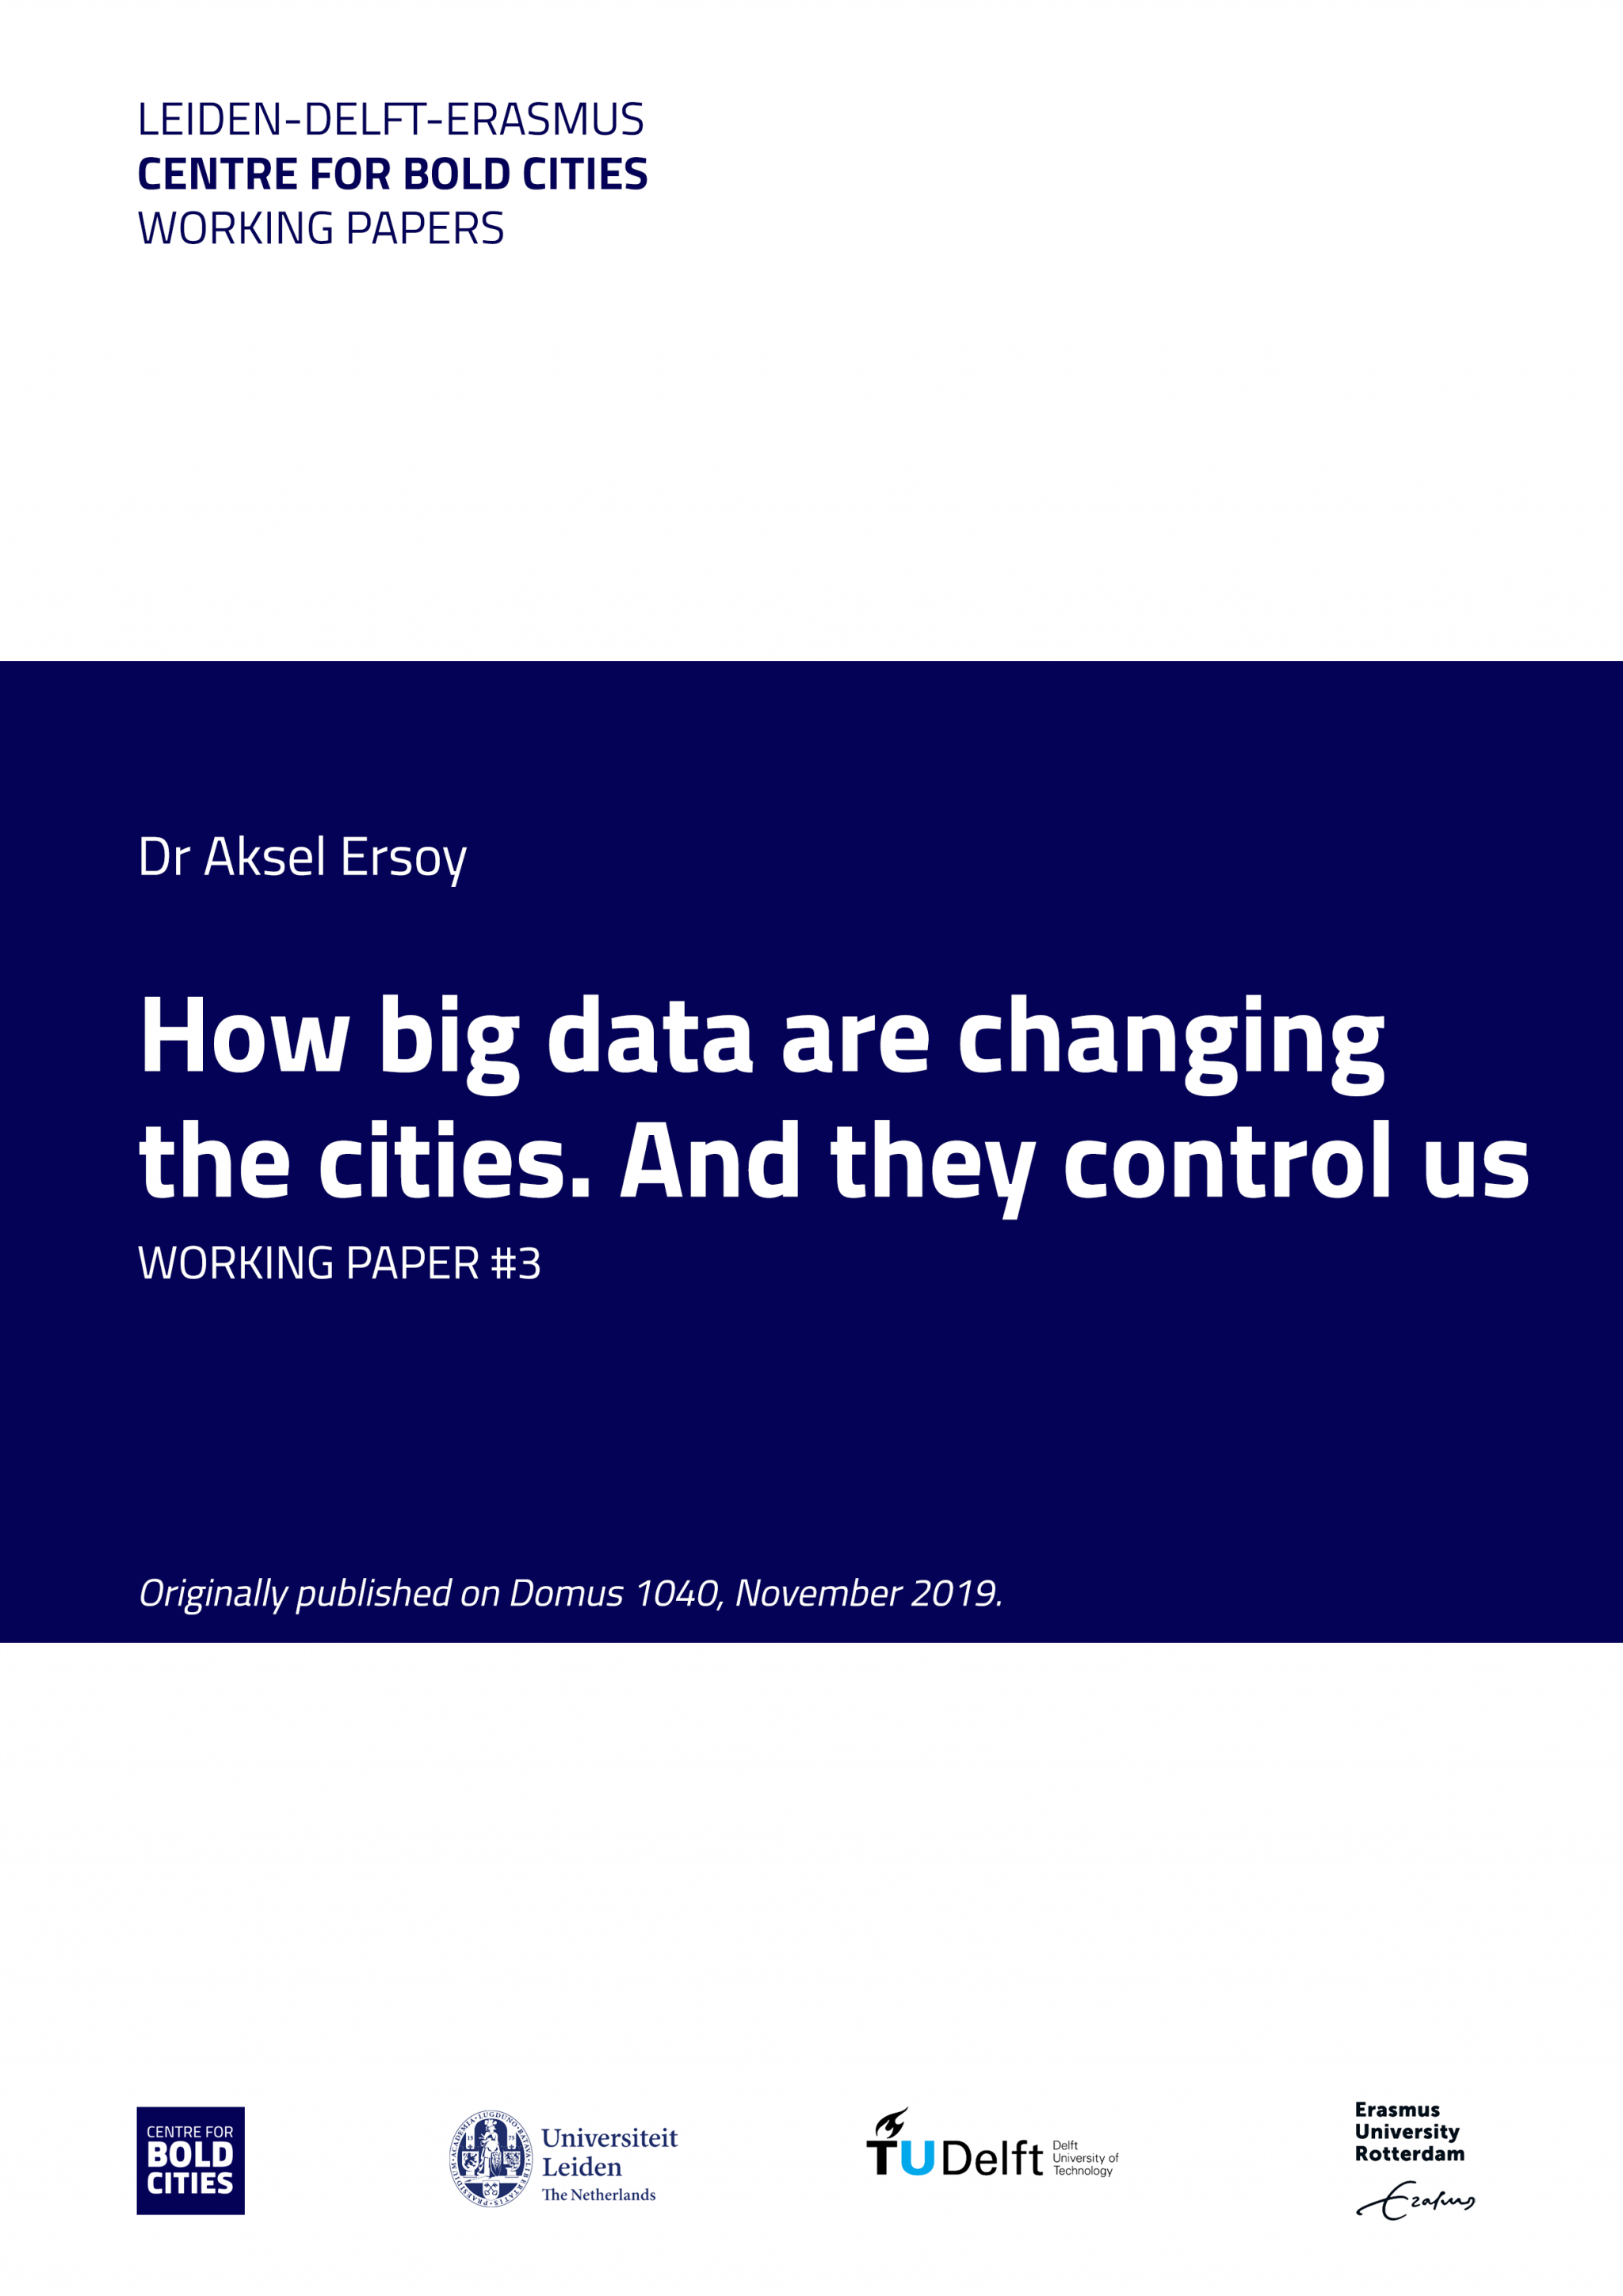 BOLD Cities working paper - Ersoy - How big data are changing the cities